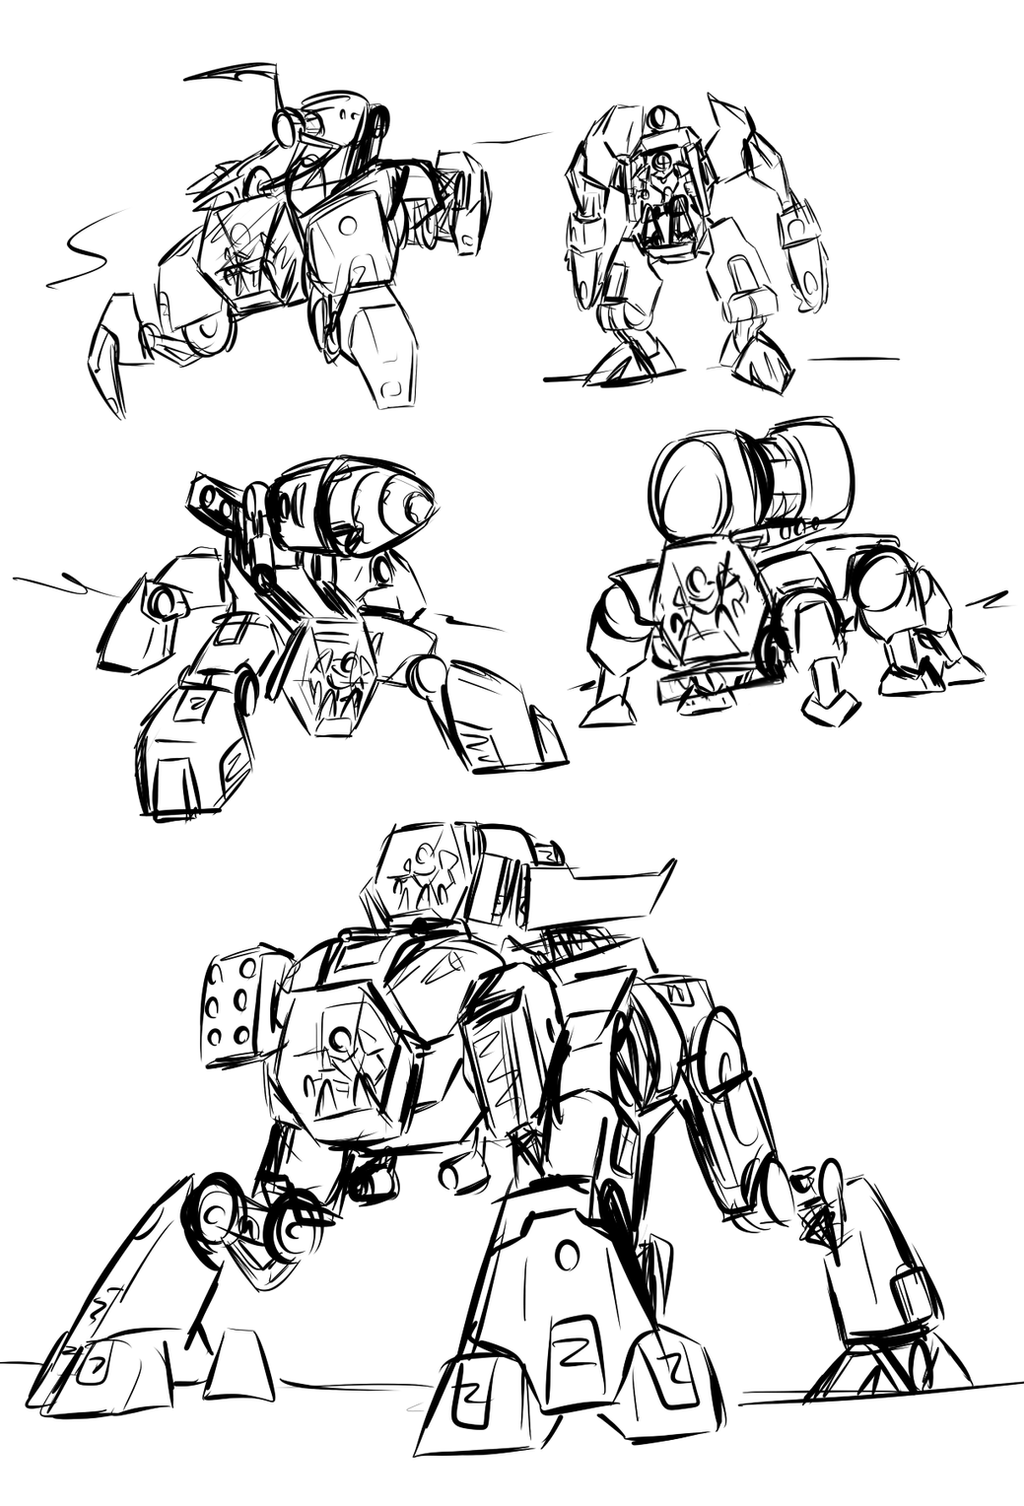 draconyx13 14 1 hf ifb wave 2 mechs by kalhiki - Hero Factory Coloring Pages Furno